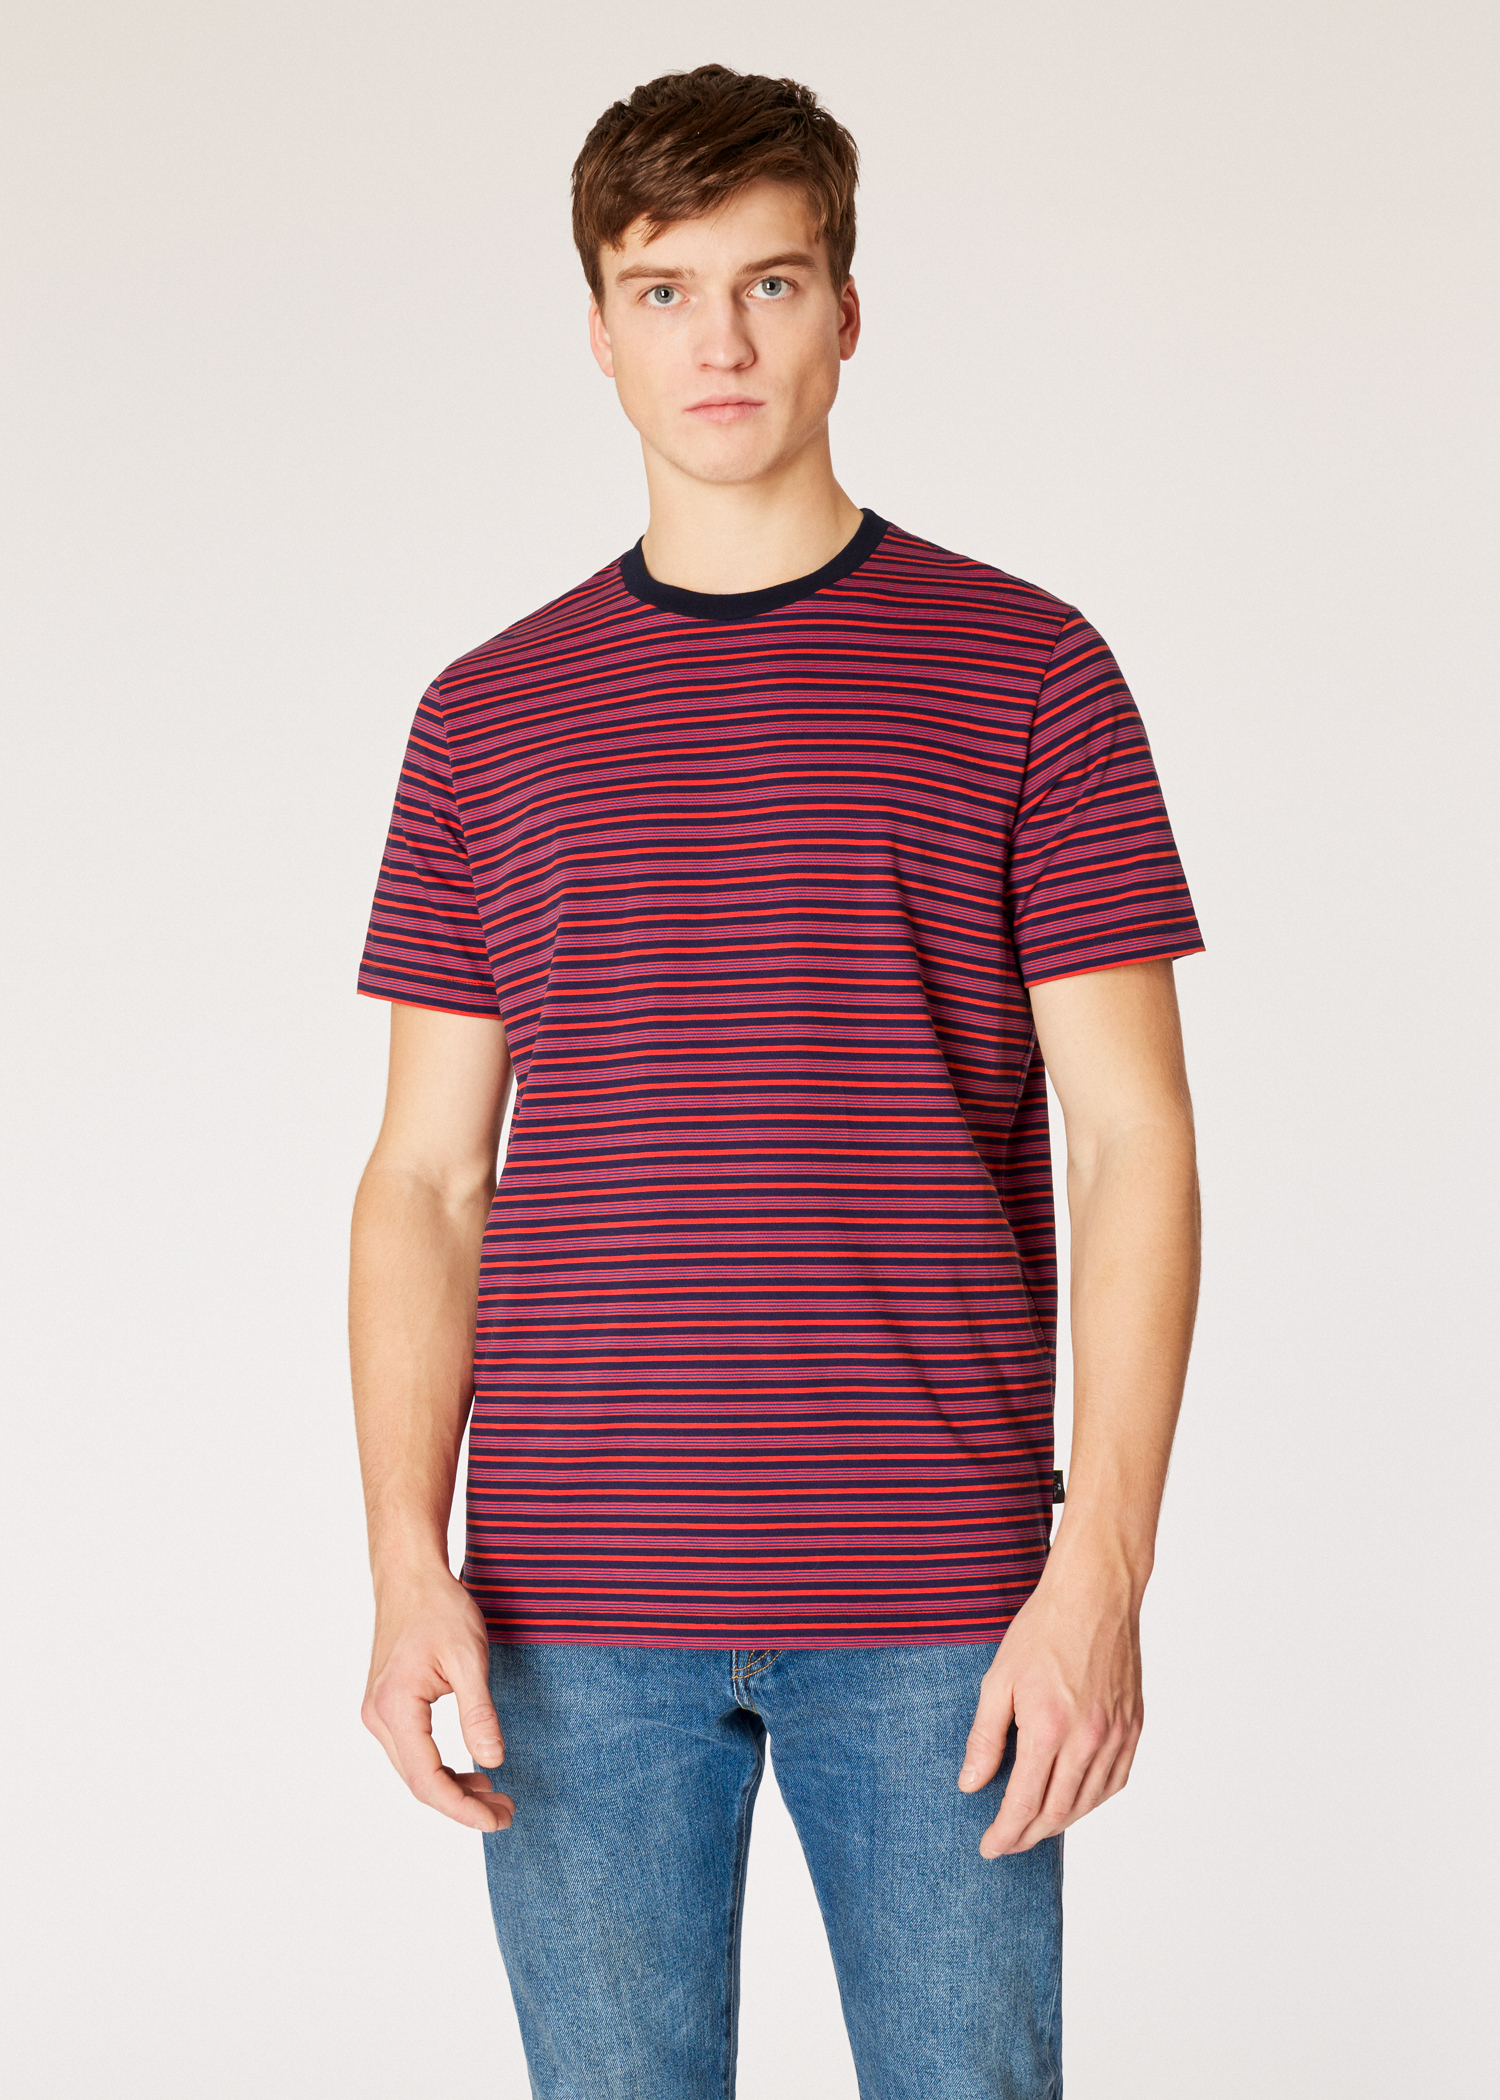 44397bacb4 Model front close up - Men's Red And Navy Stripe Organic-Cotton T-Shirt